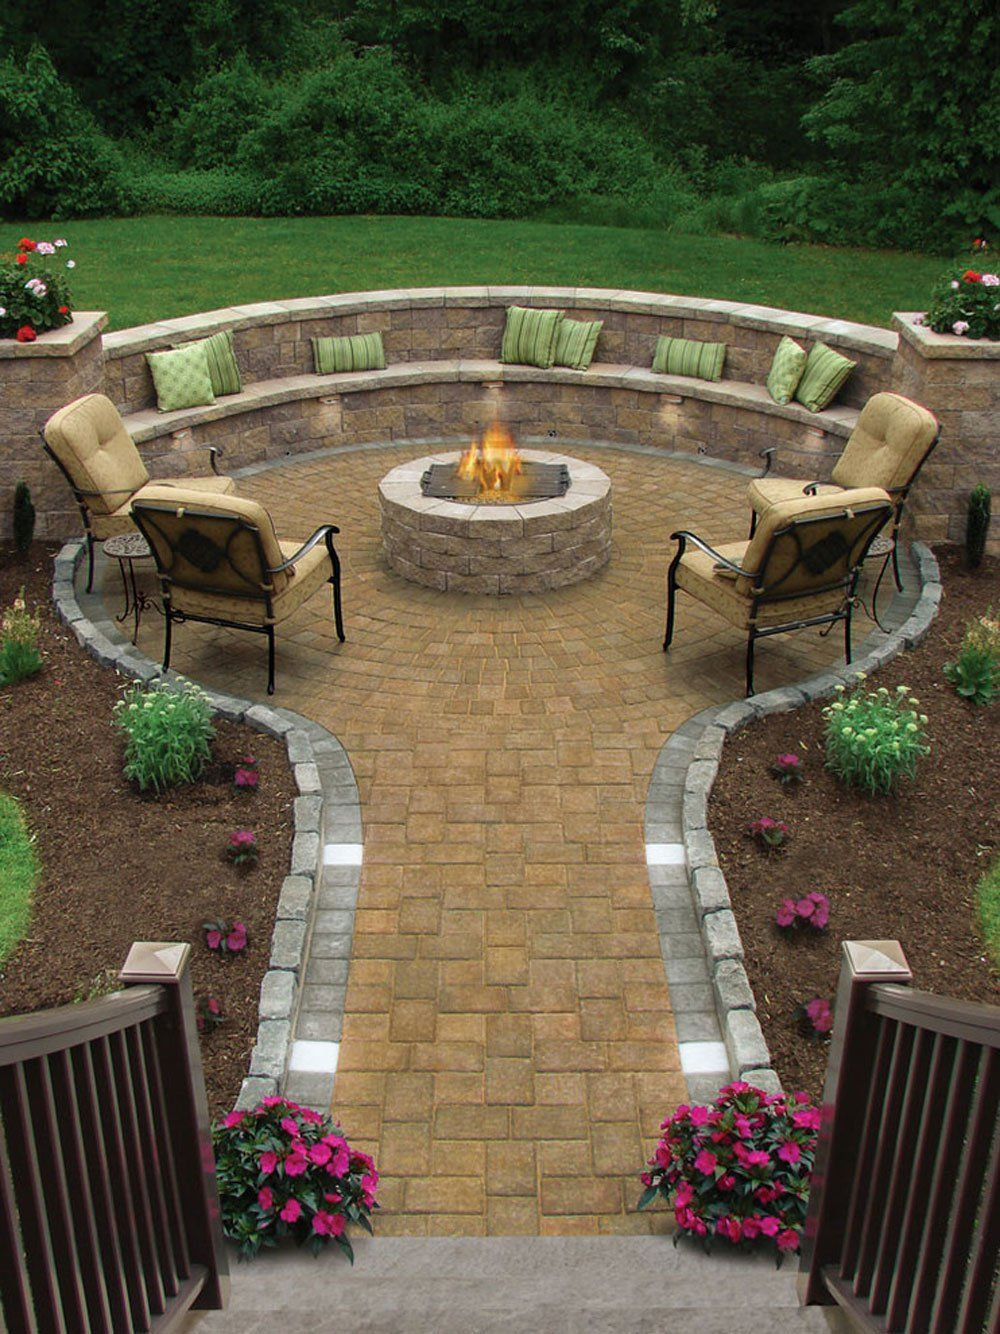 17 Of The Most Amazing Seating Area Around The Fire Pit Ever in measurements 1000 X 1334